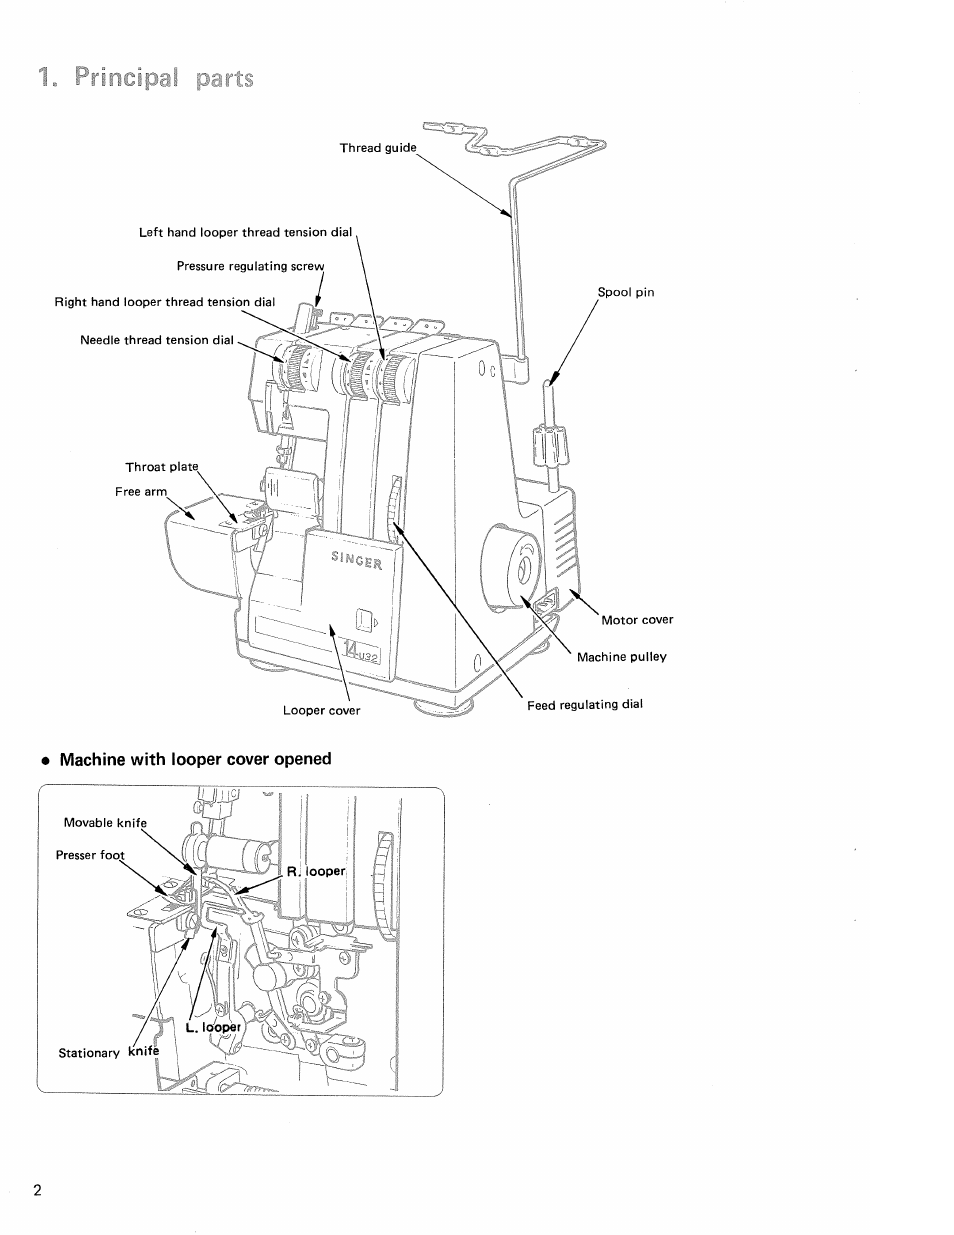 DIAGRAM] 350 Chevy Engine Wiring Diagram For 1972 Fj40 FULL Version HD  Quality 1972 Fj40 - DIAGRAMPAL.CONSERVATOIRE-CHANTERIE.FRdiagrampal.conservatoire-chanterie.fr